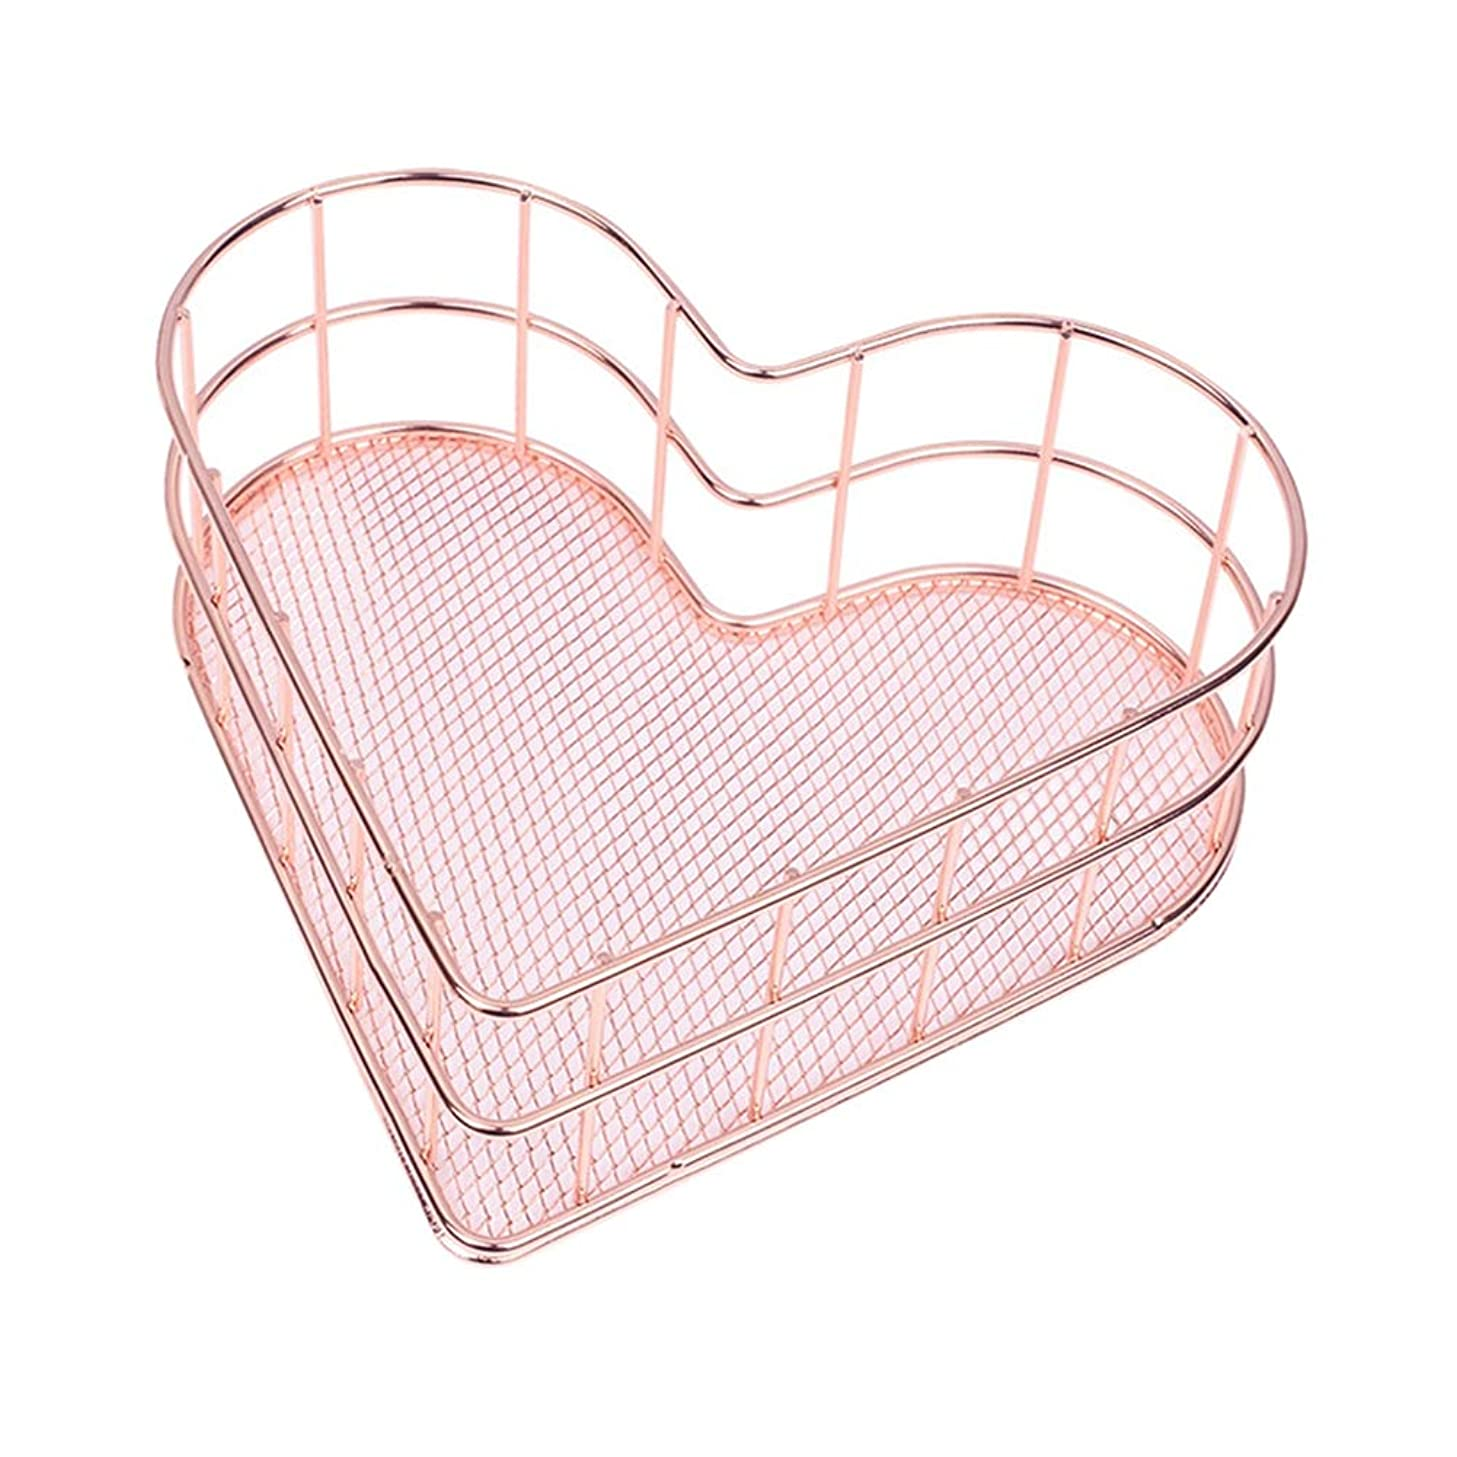 Likense Heart Shaped Rose Gold Storage Basket Makeup Organizers Box, Hollow Metal Jewelry Cosmetic Tools Storage Tray Table Office Home Bathroom Bedroom Organizers